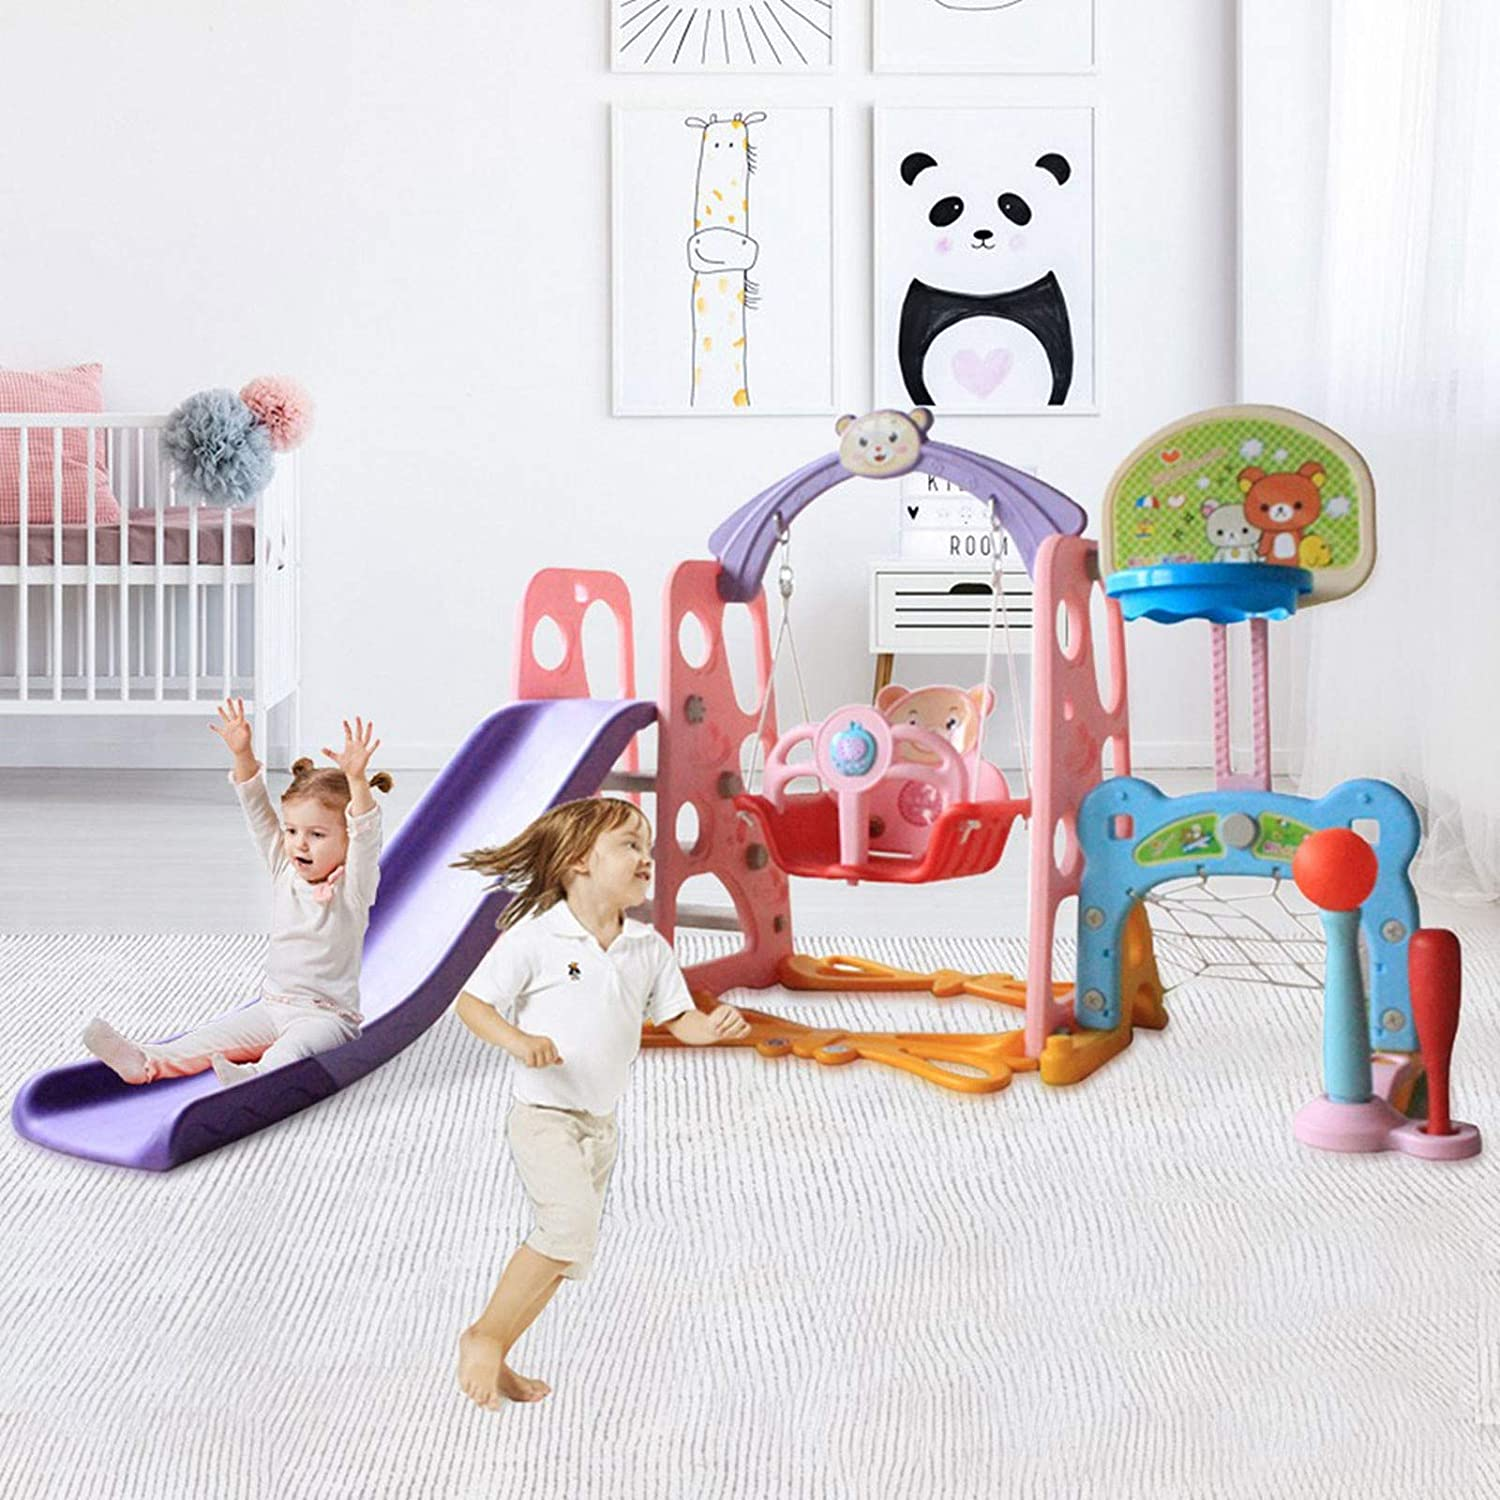 US 3-5 Day,Pink Football Gate Toddler Climber and Swing Set,6 in 1 Kids Indoor and Outdoor Freestanding Slide Swing with Basketball Hoop Baseball Bat,Music Machine,Infant Playground Yard Games